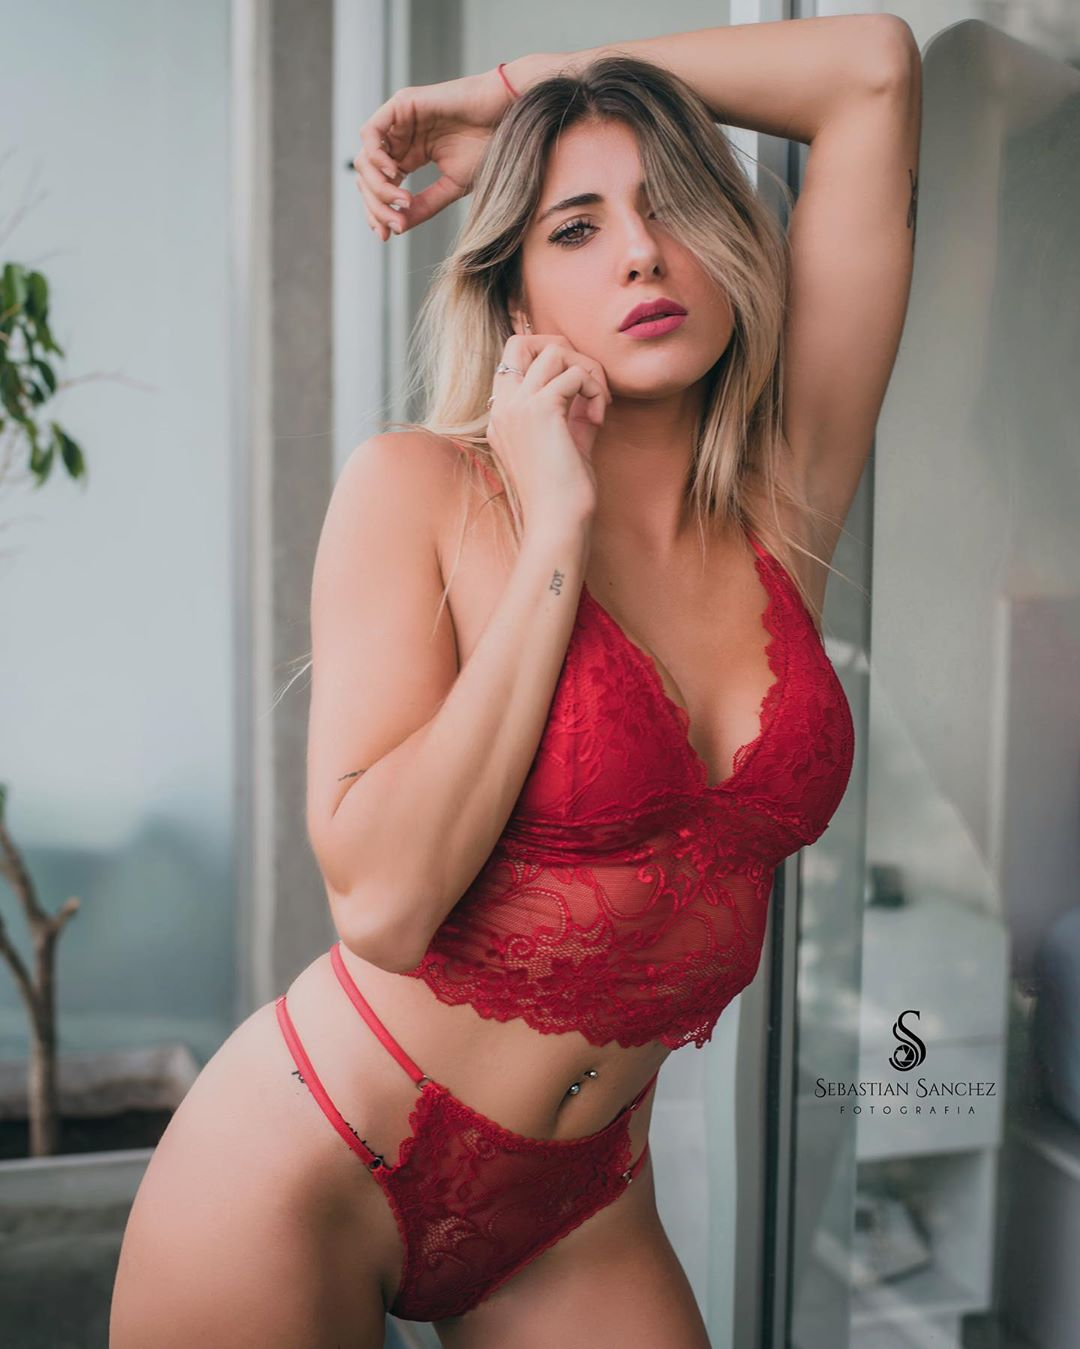 Beautiful Argentinian model Camila Sol Botti wearing red lingerie with her arm up whiwing her incredible fit body and her belly piercing